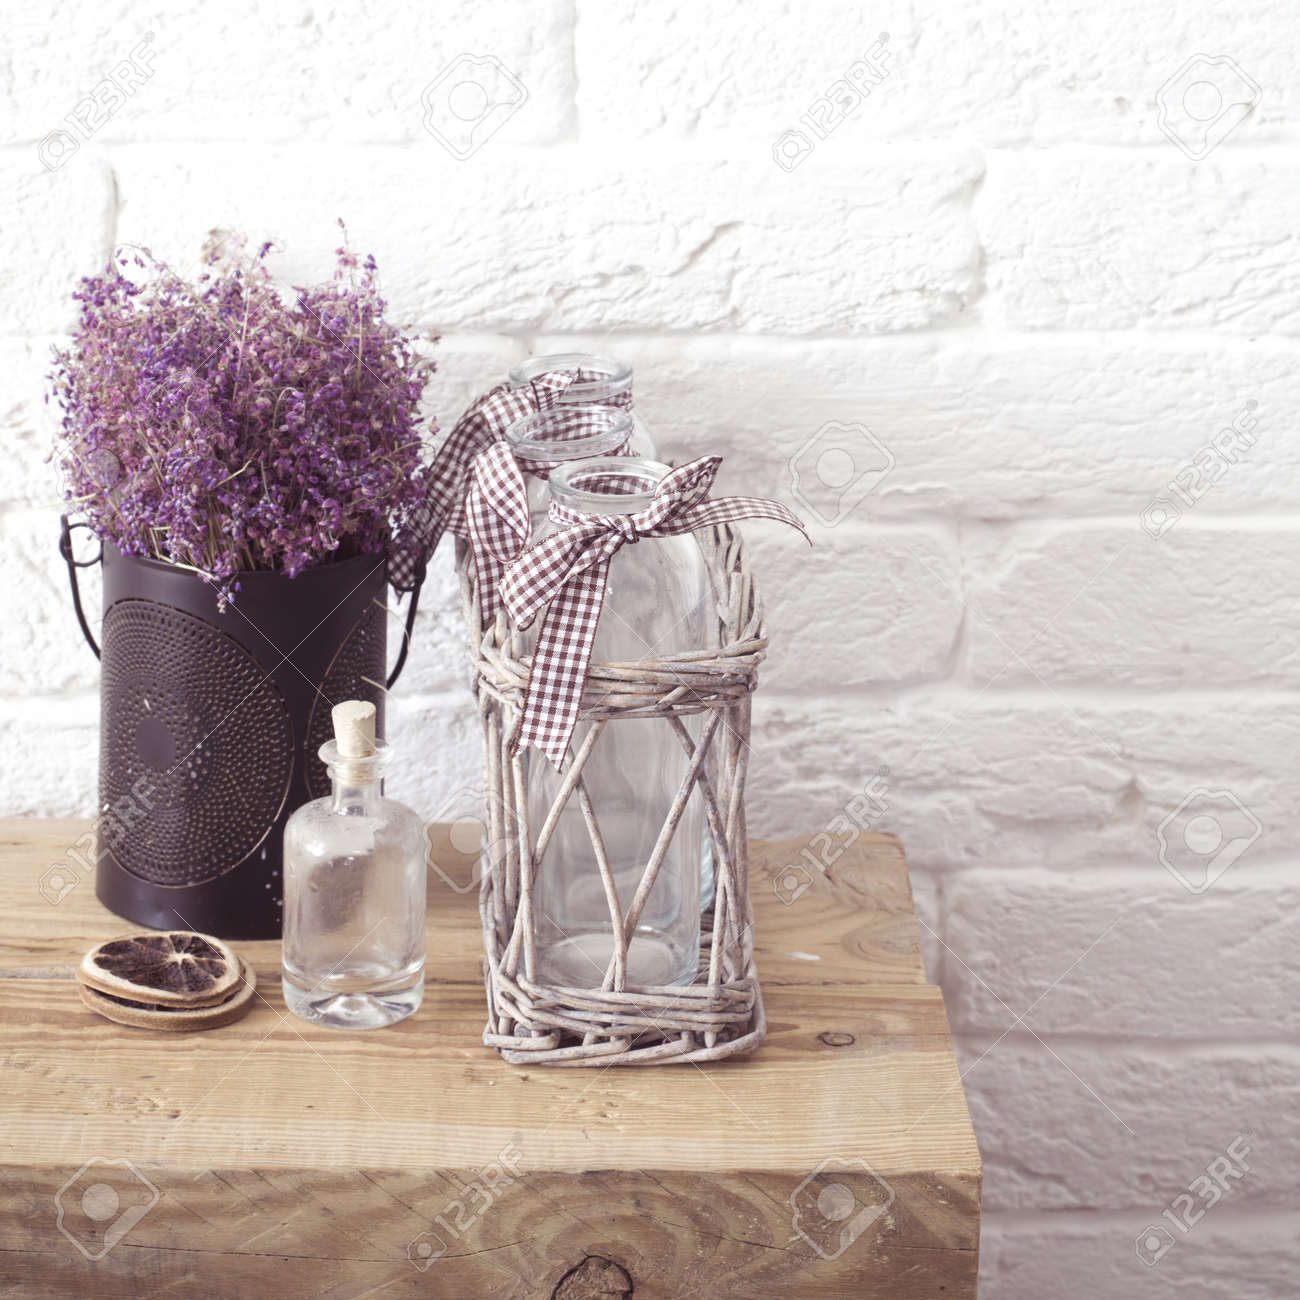 Rustic Home Decor Provence Style Lavender Bouquet Of Dried Stock Photo Picture And Royalty Free Image Image 32615714